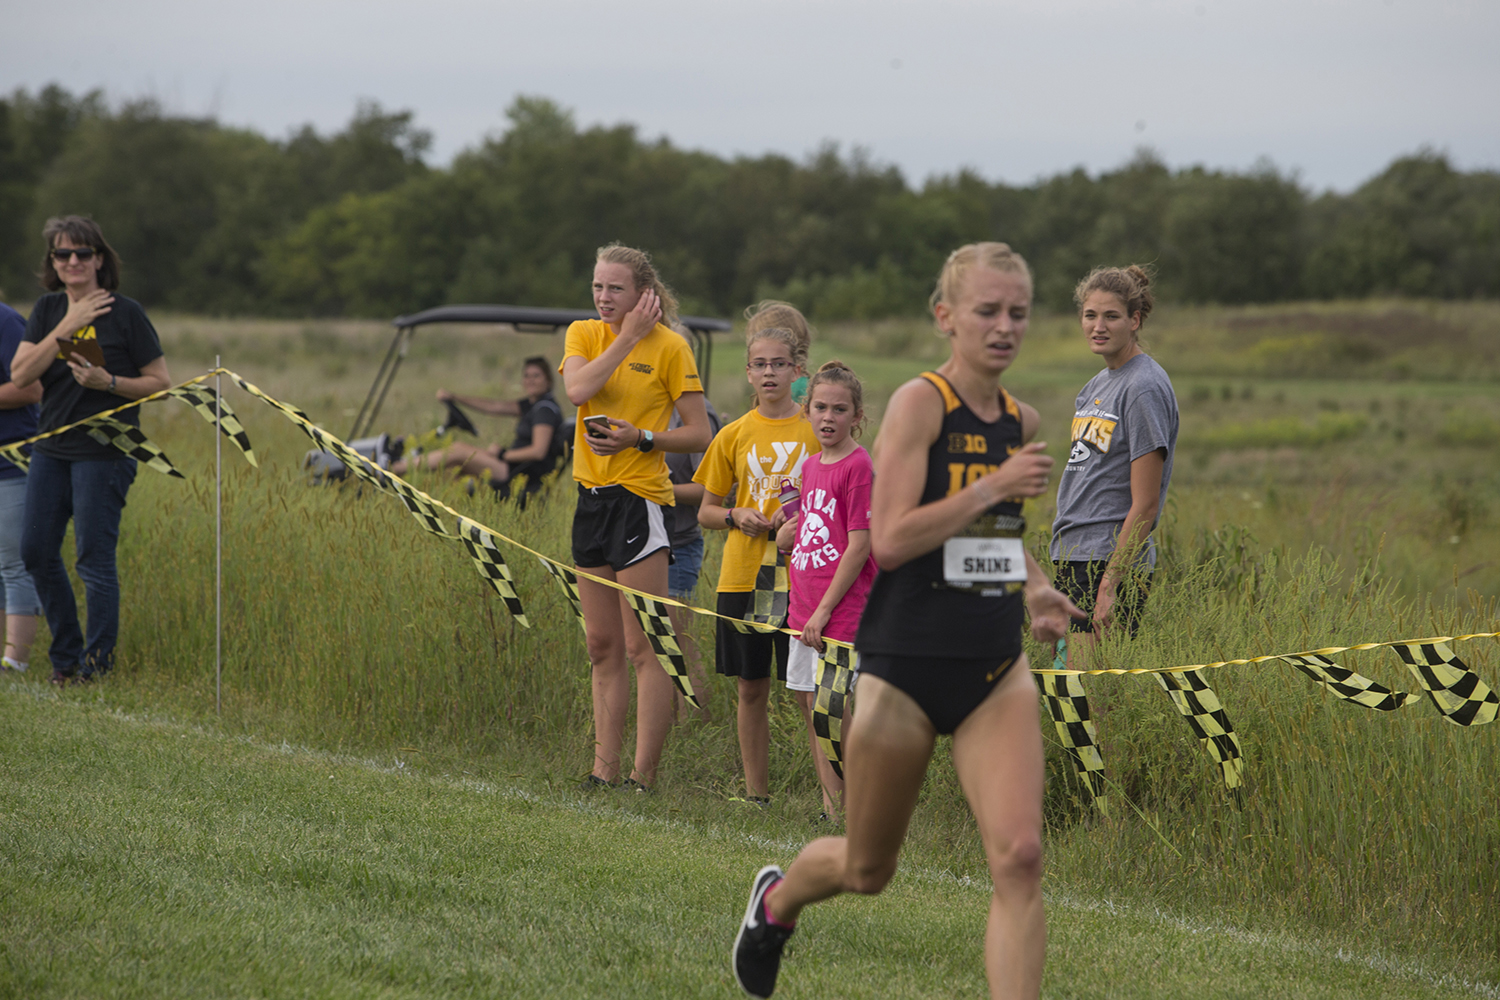 Bystanders look on as Senior Andrea Shine runs through the finish line during the Hawkeye Invitational at Ashton Cross Country course on Friday, Aug. 31, 2018.